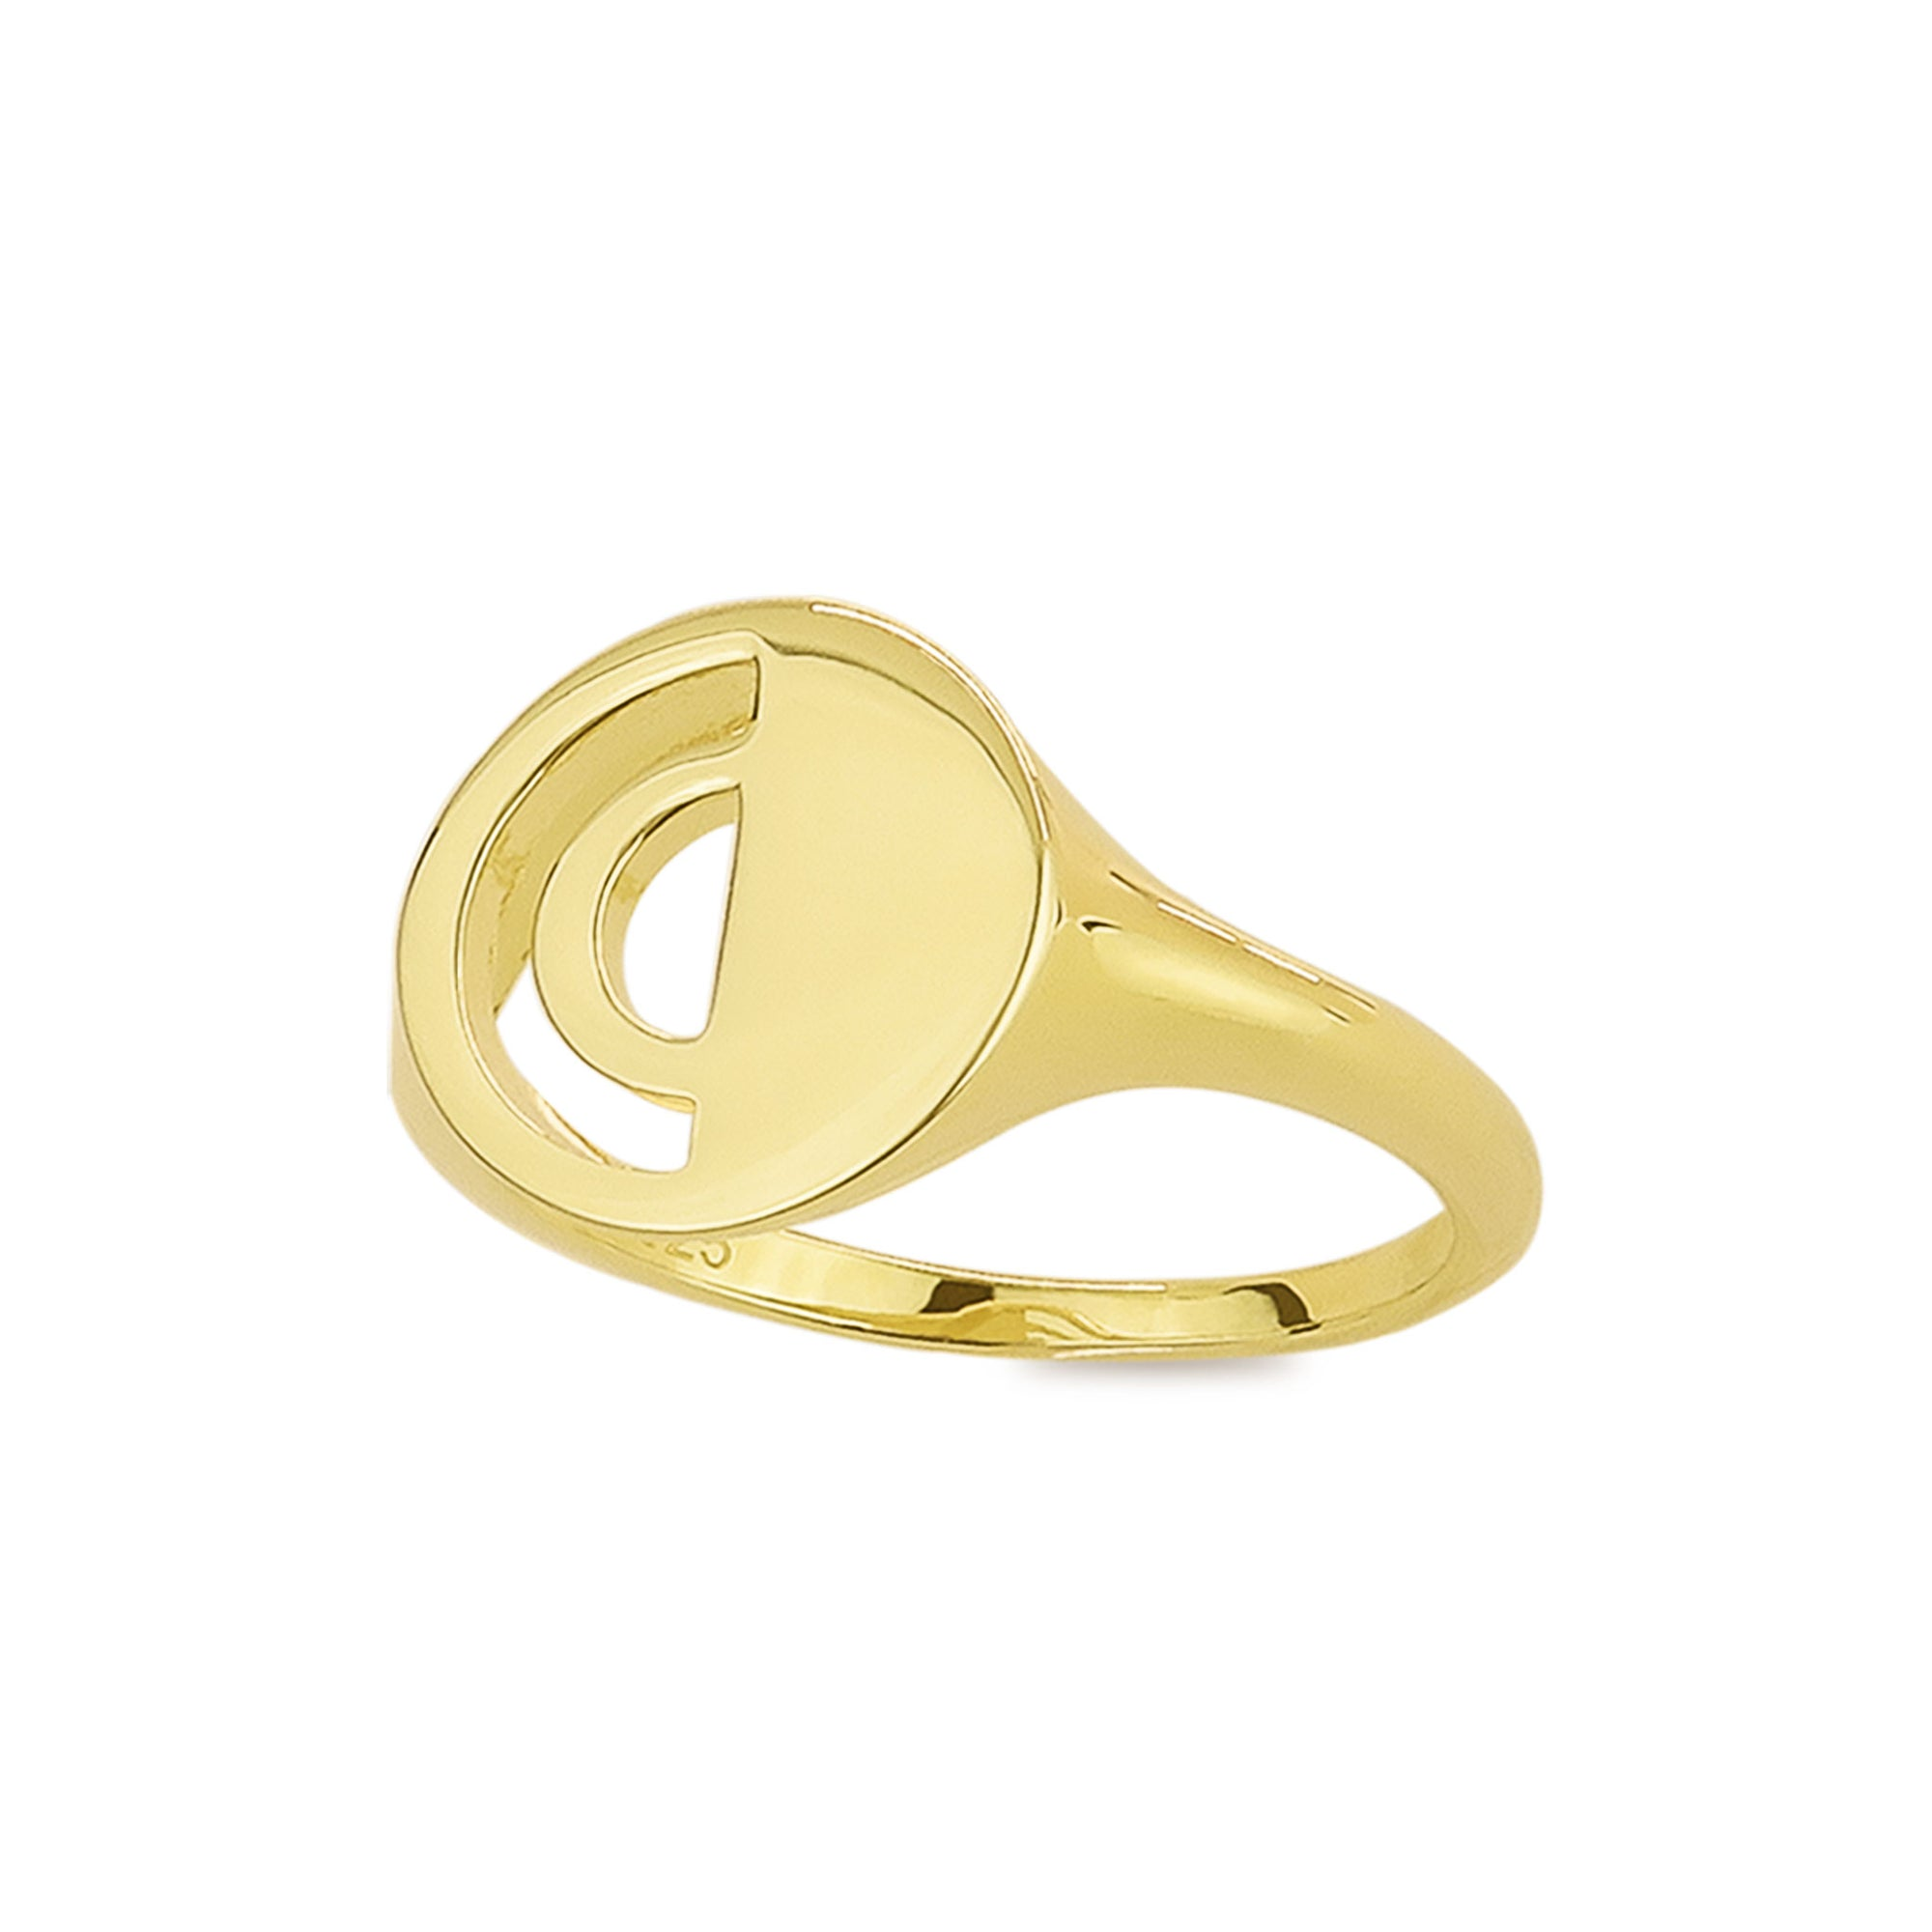 Pacifica Cut Out Signet Ring - Evertess Jewelry